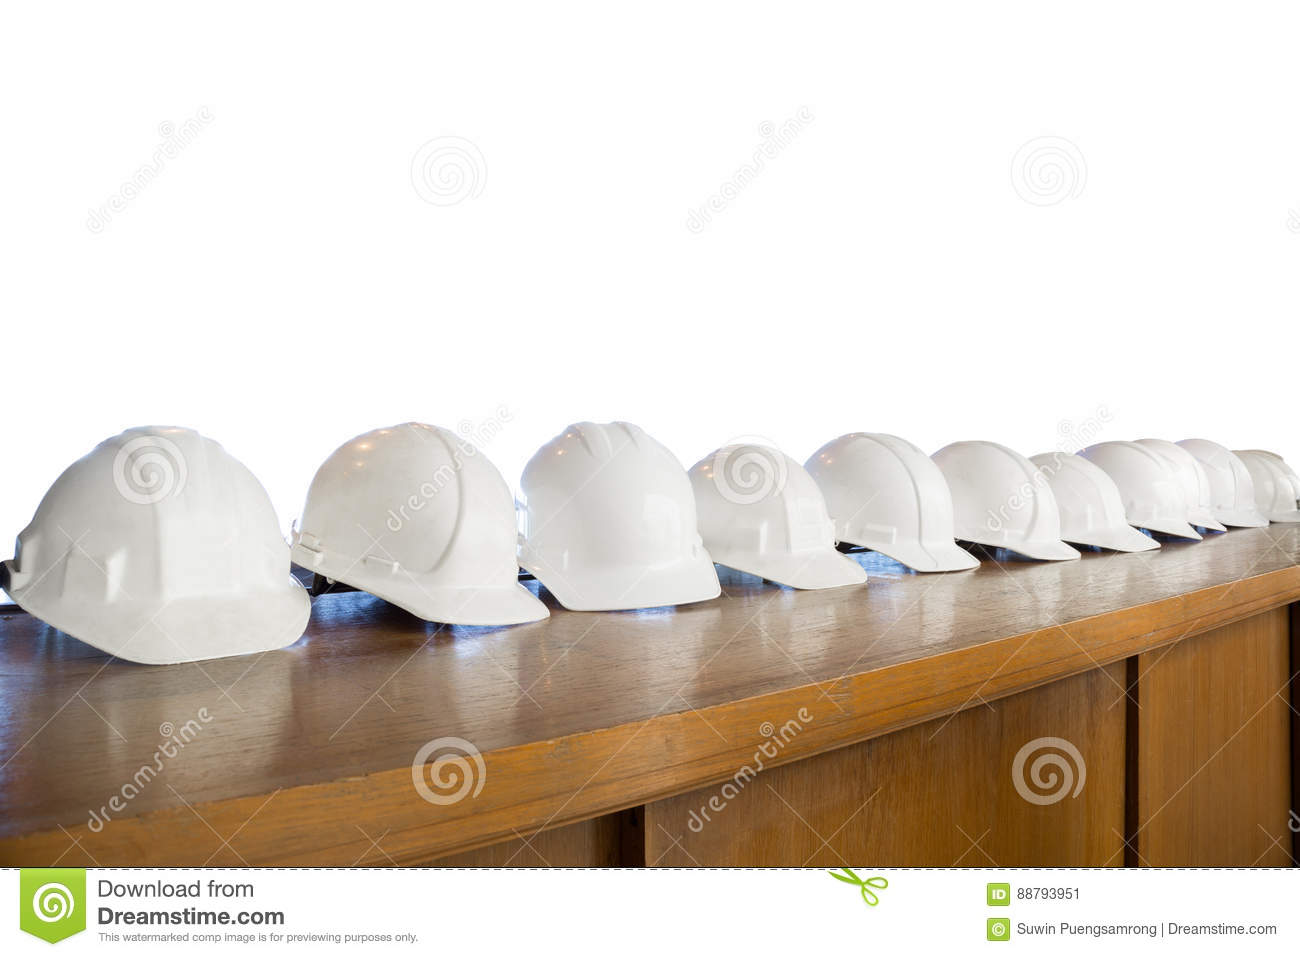 Safety White Helmet Row Isolated On White Background Stock Image ... fe3d8da383f3